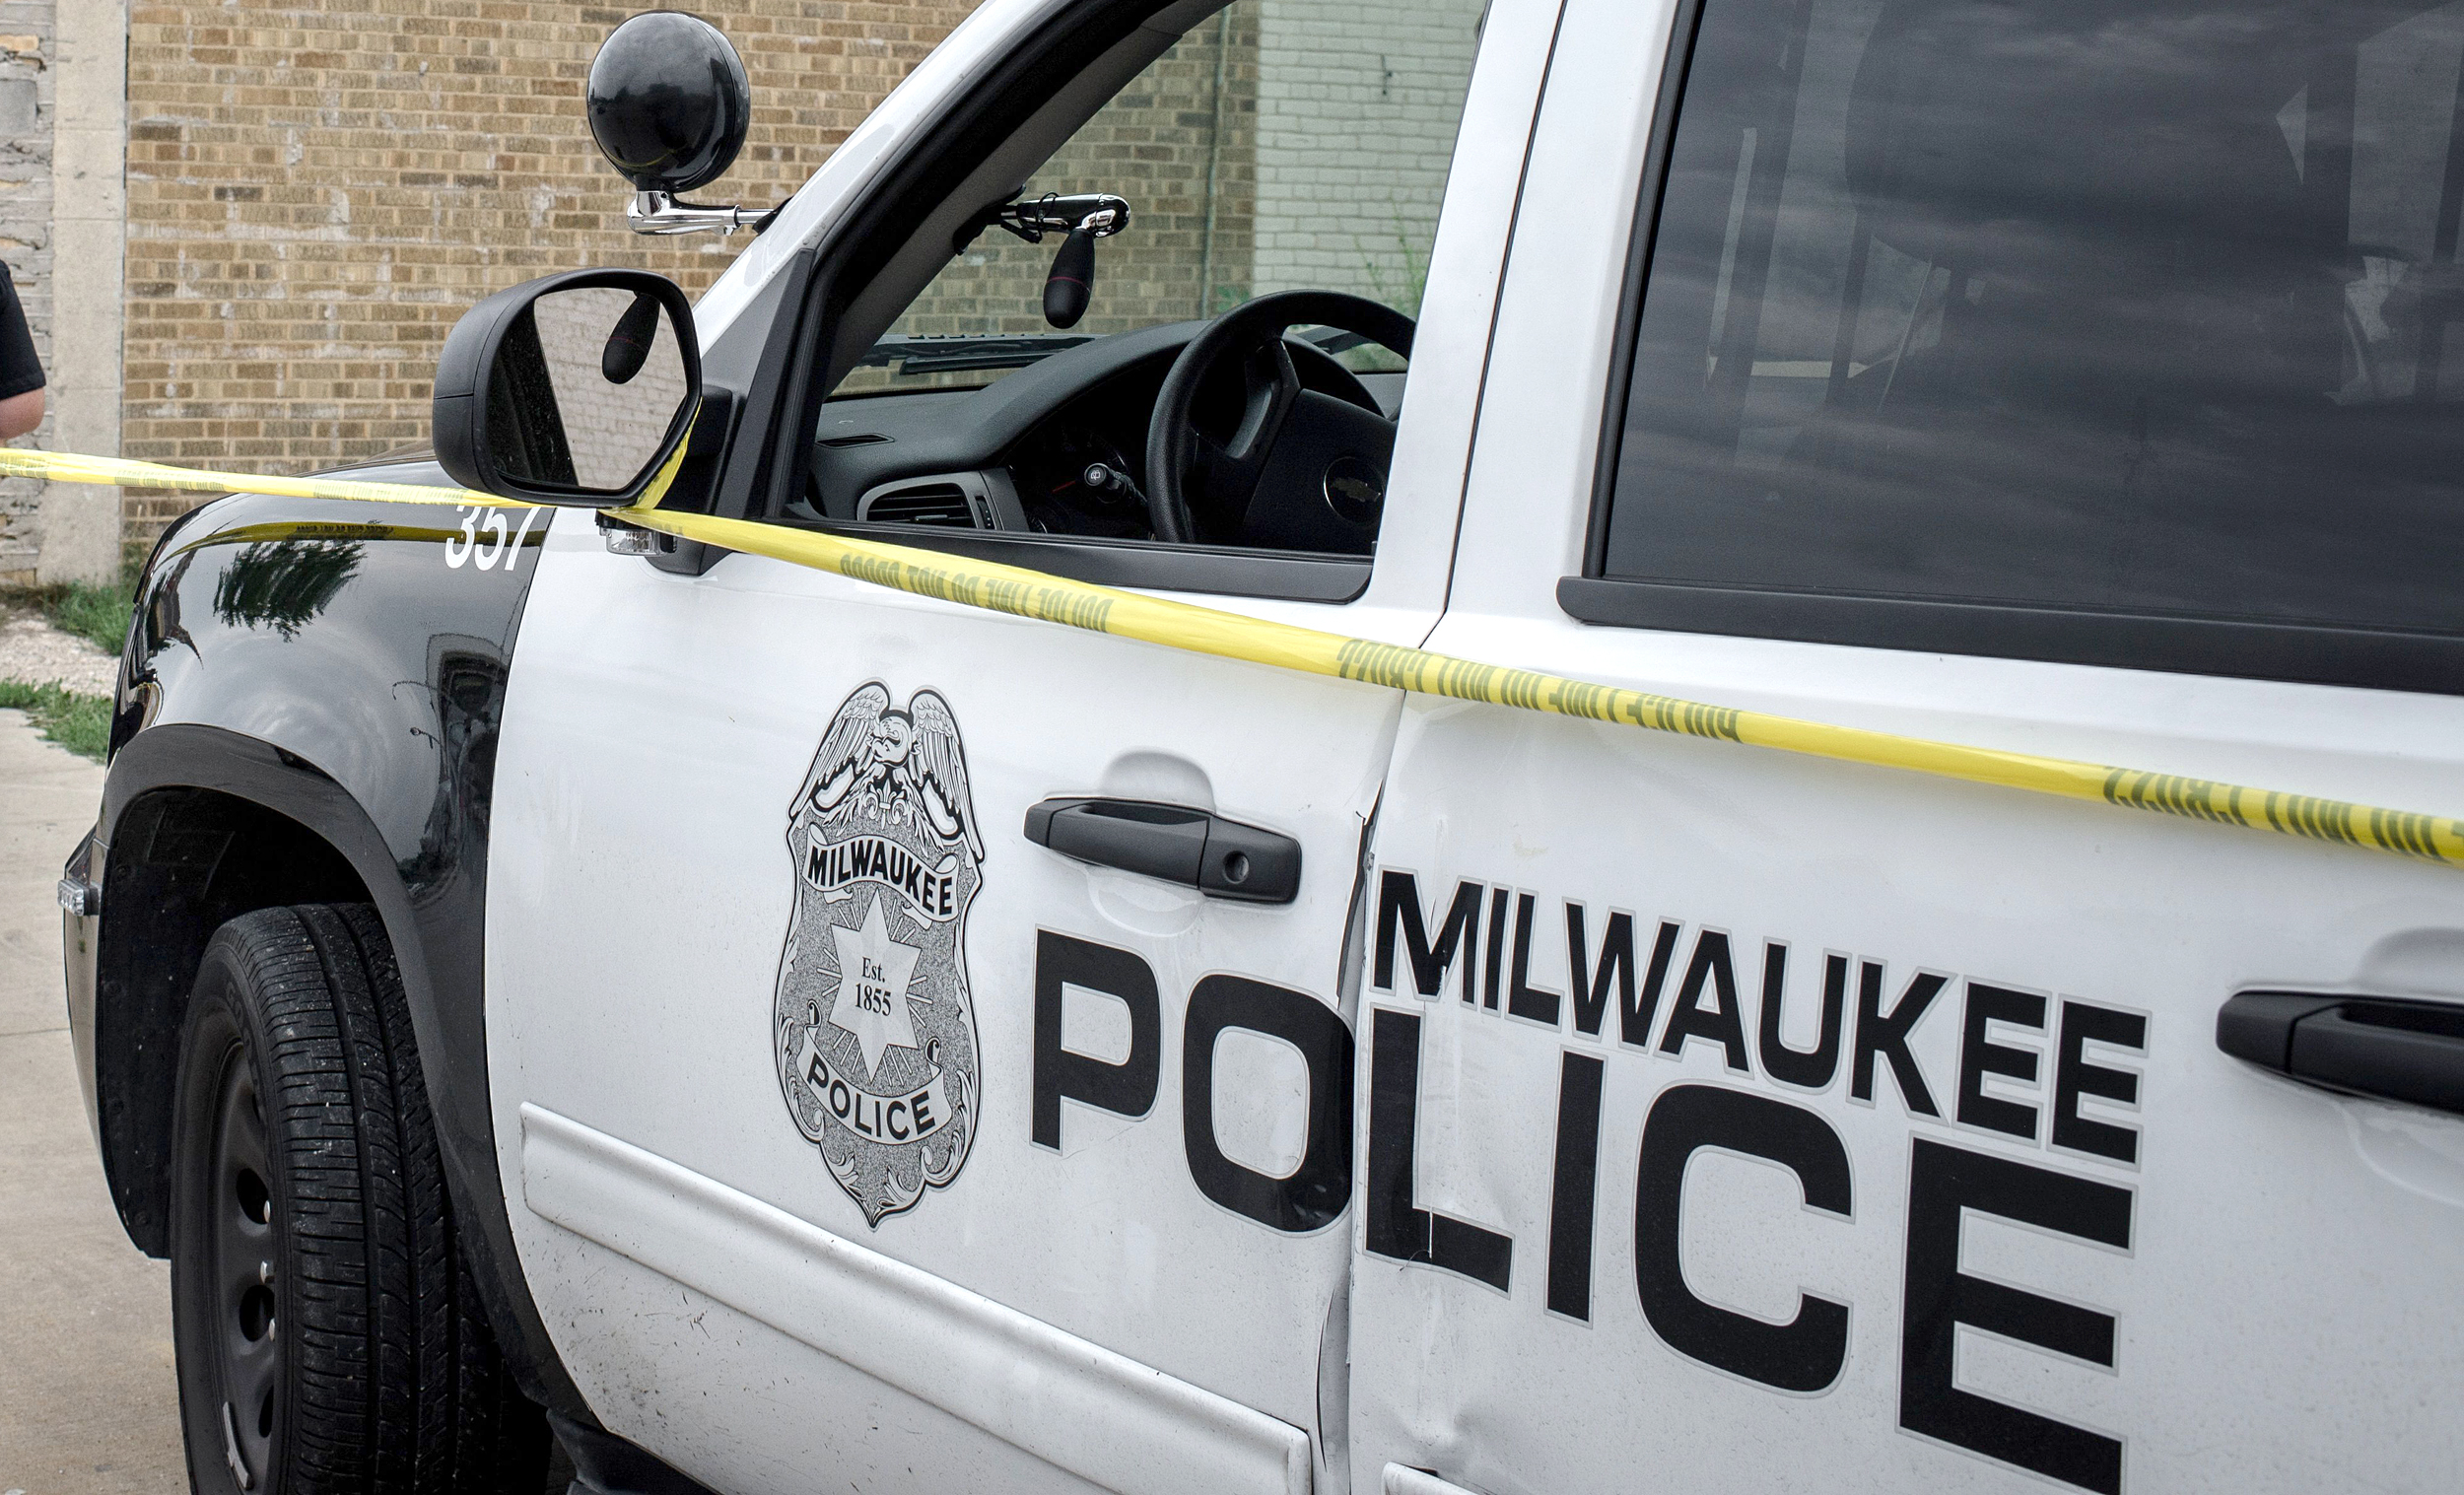 4-year-old Milwaukee girl accidentally shoots father and herself